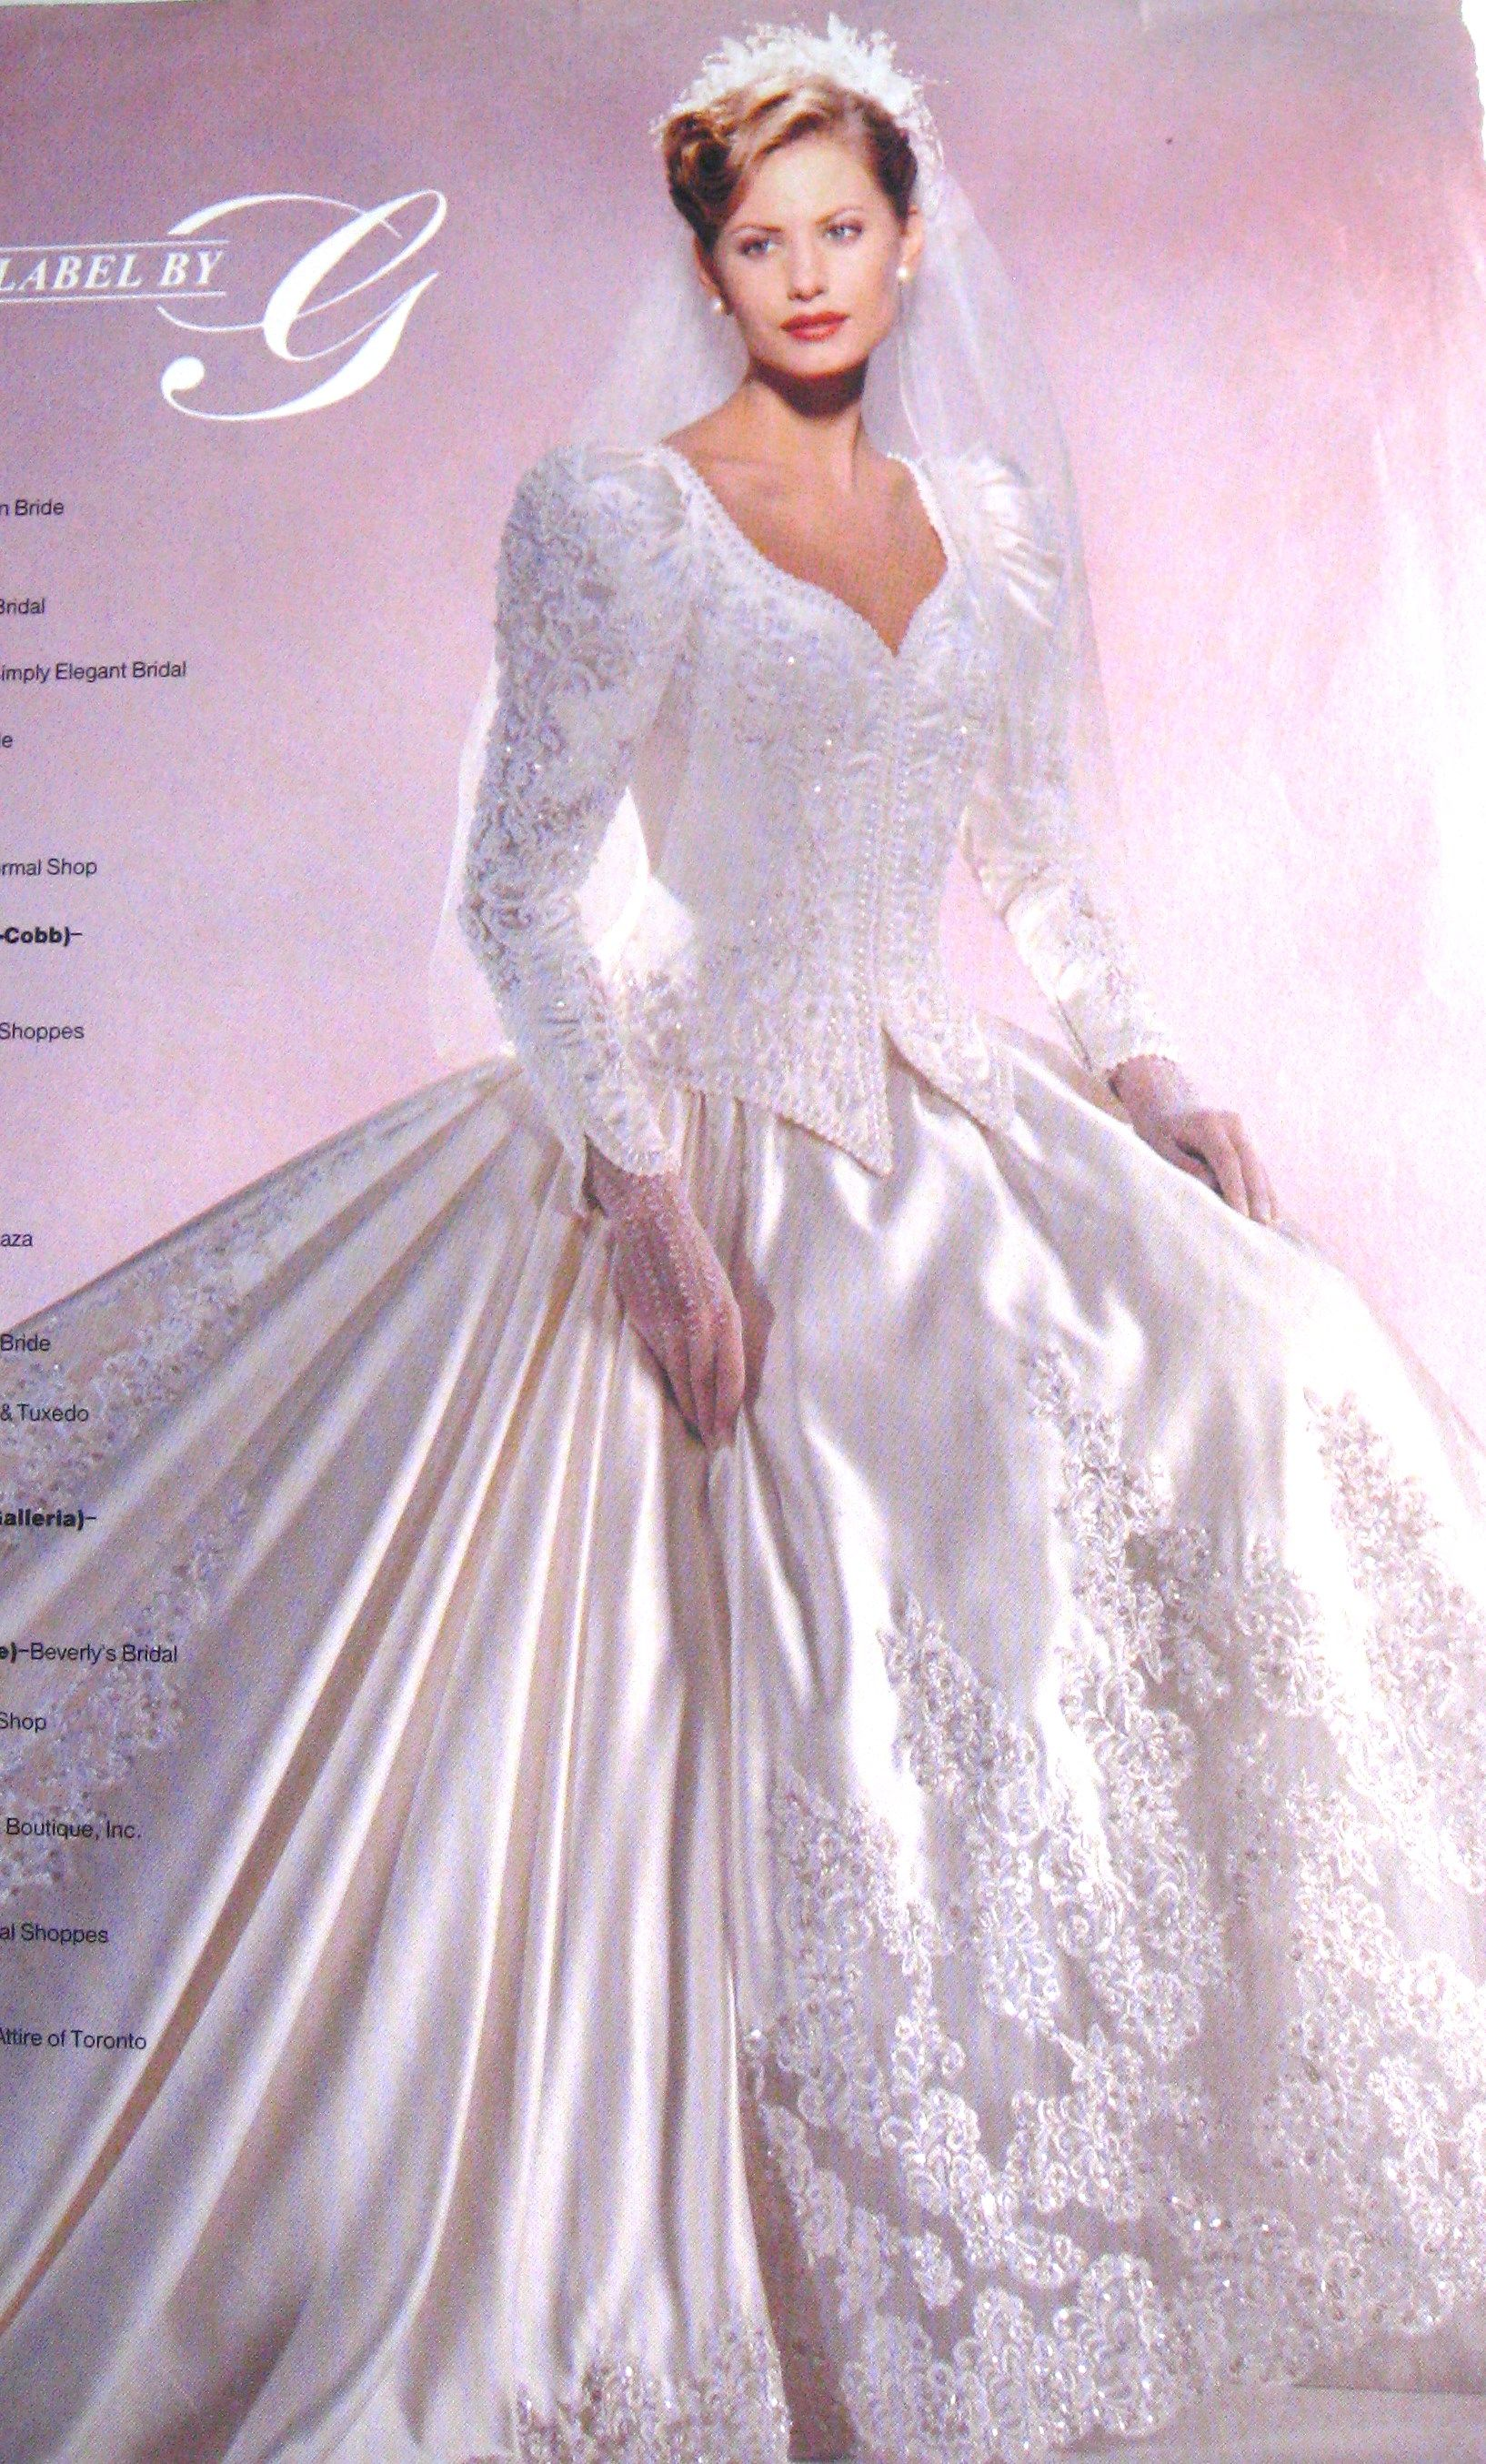 My gown, Private Label by G, 1997. Most beautiful dress ever. Donna ...